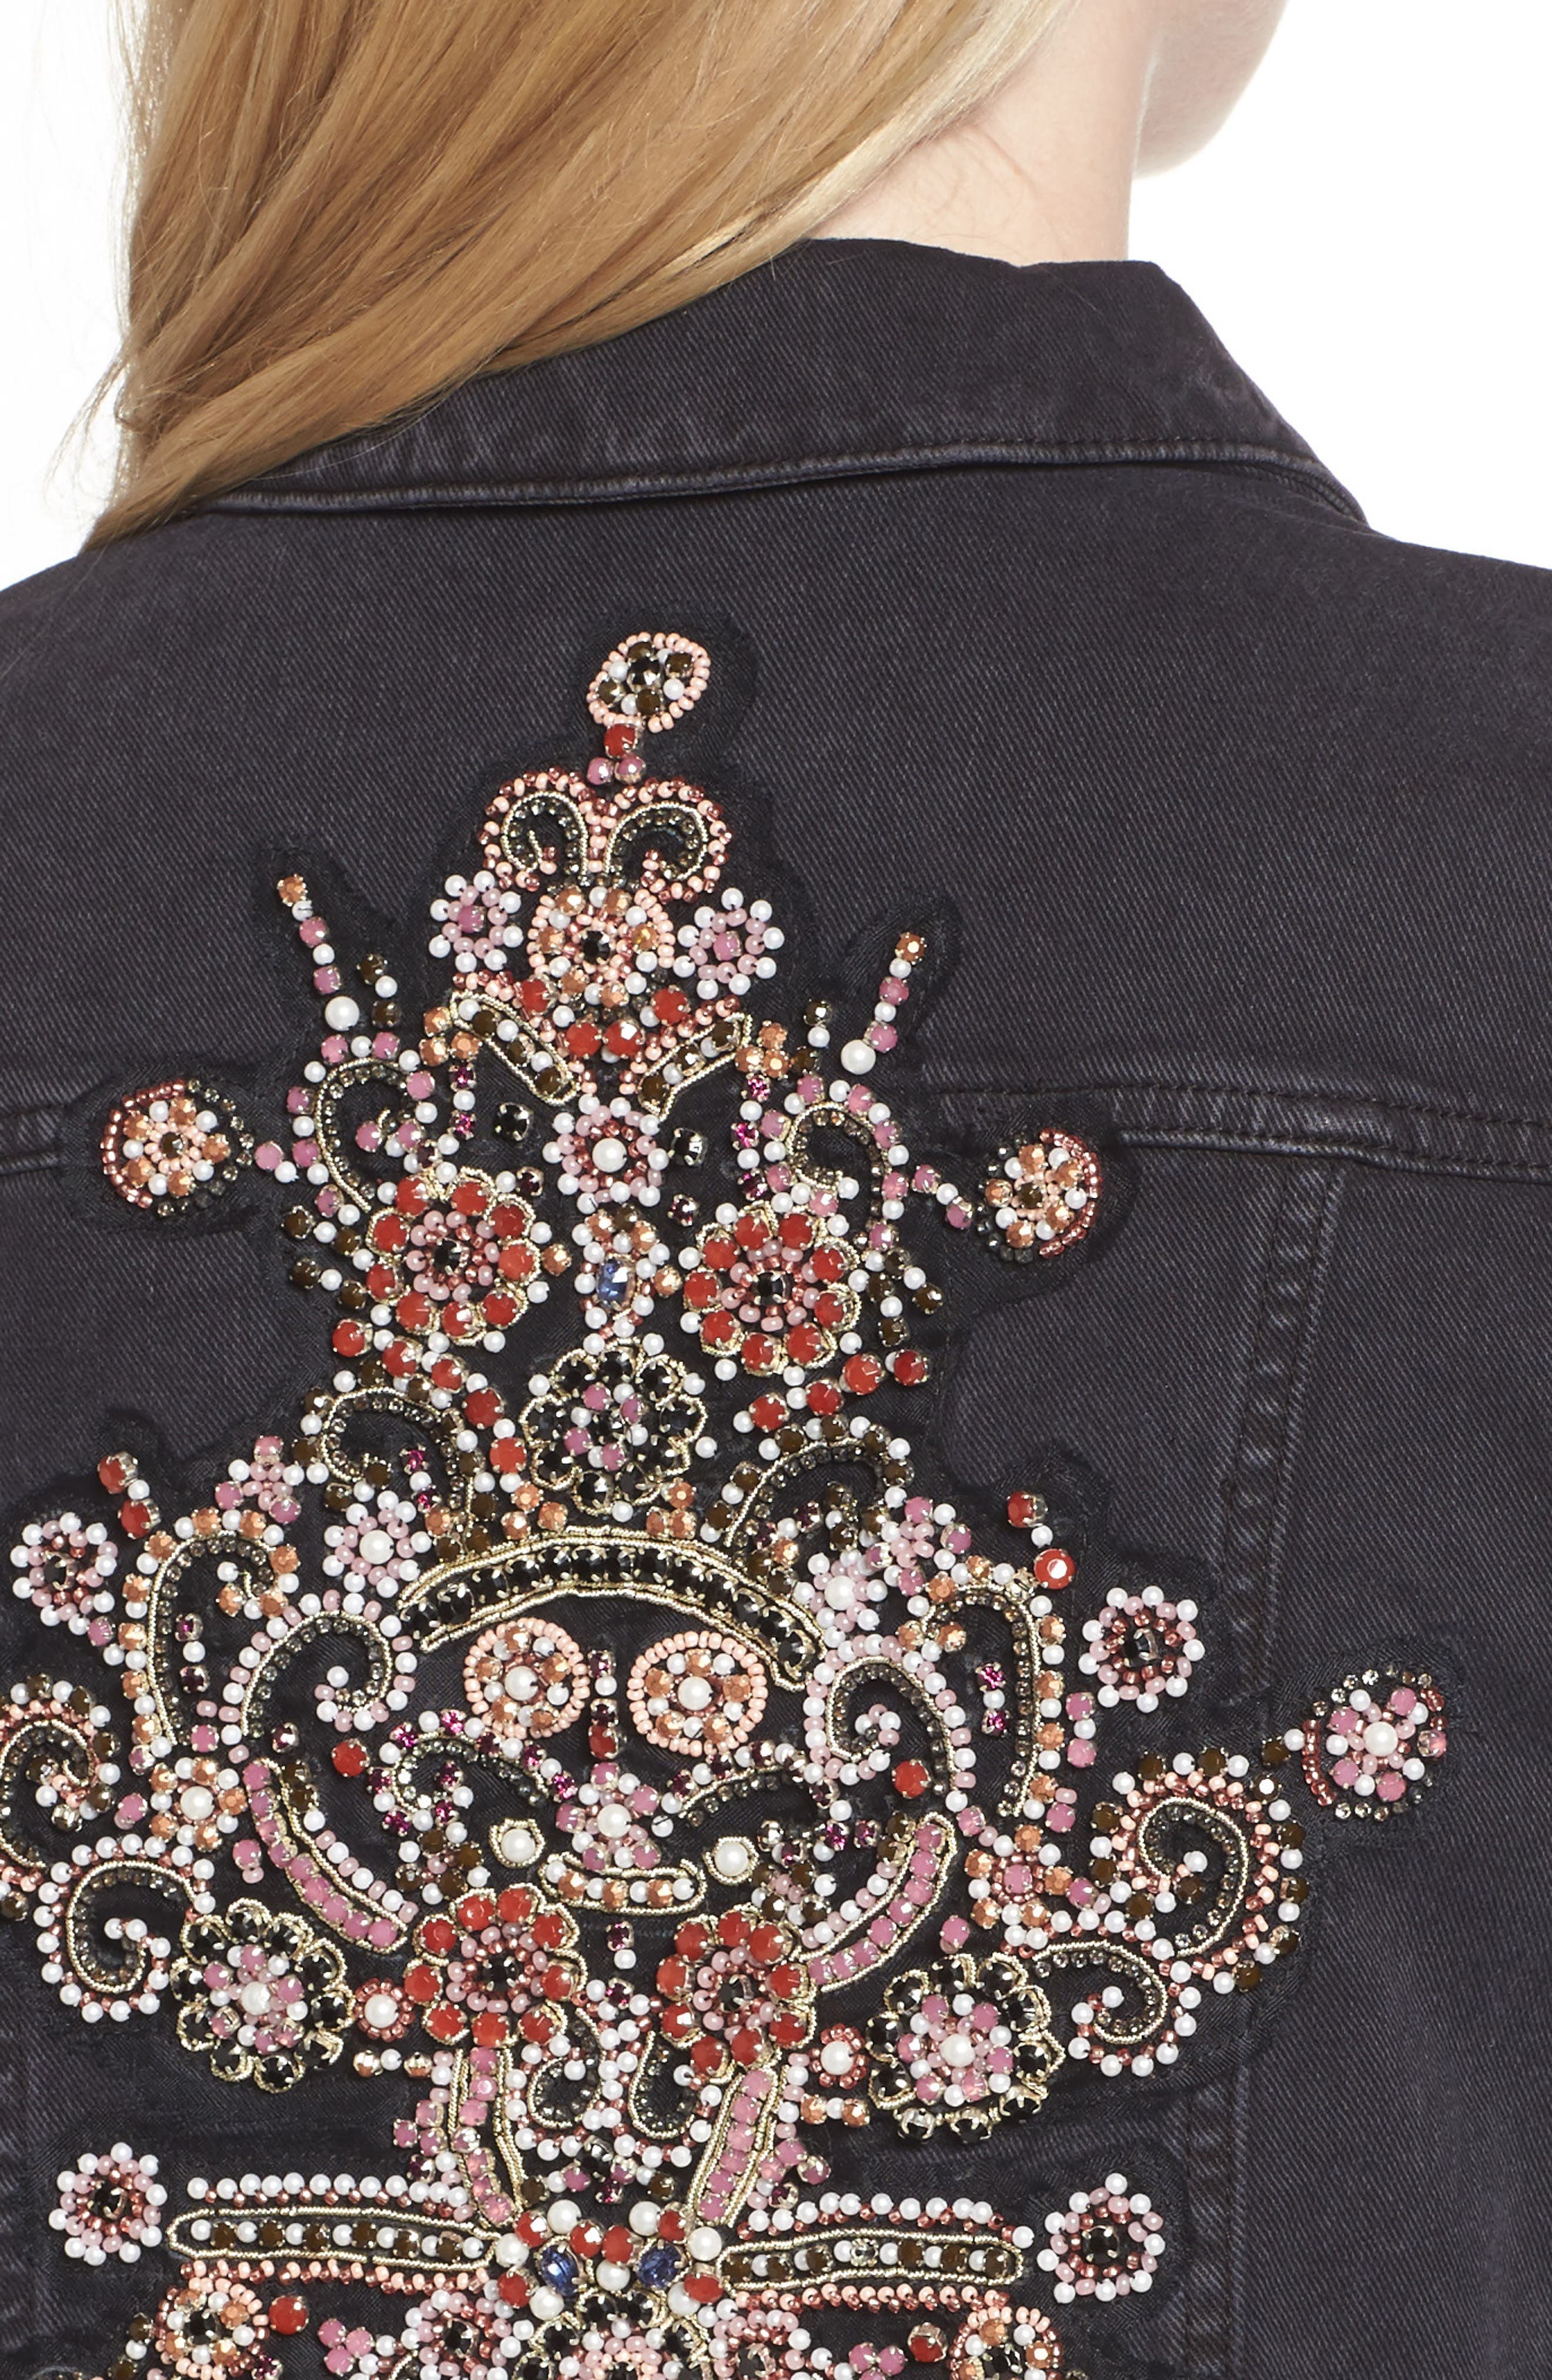 Embellished Boyfriend Denim Jacket,                             Alternate thumbnail 4, color,                             005